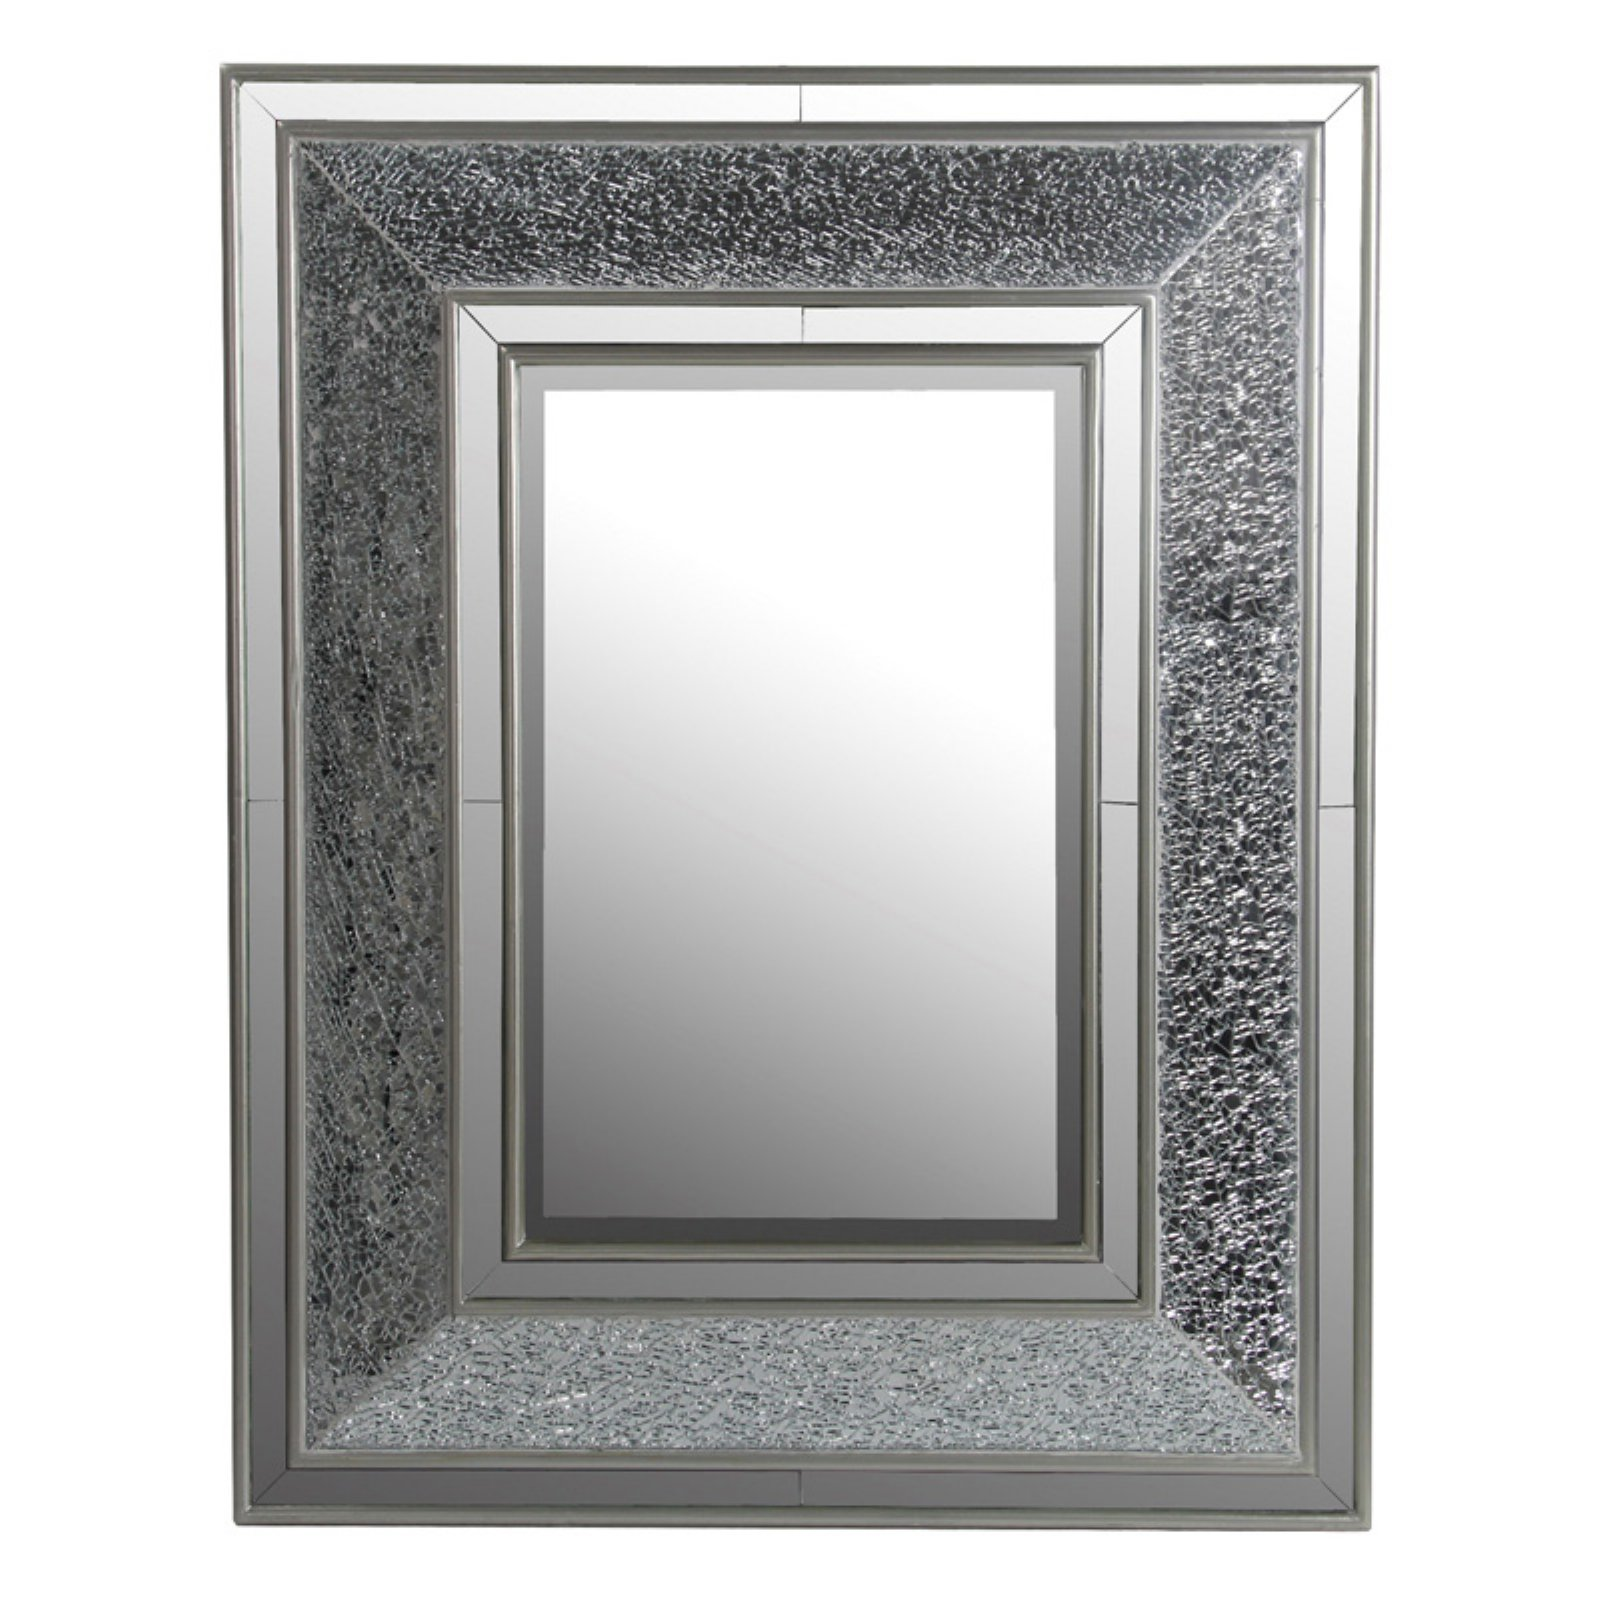 Privilege International Rectangle Mosaic Wall Mirror - 30W x 38H in.